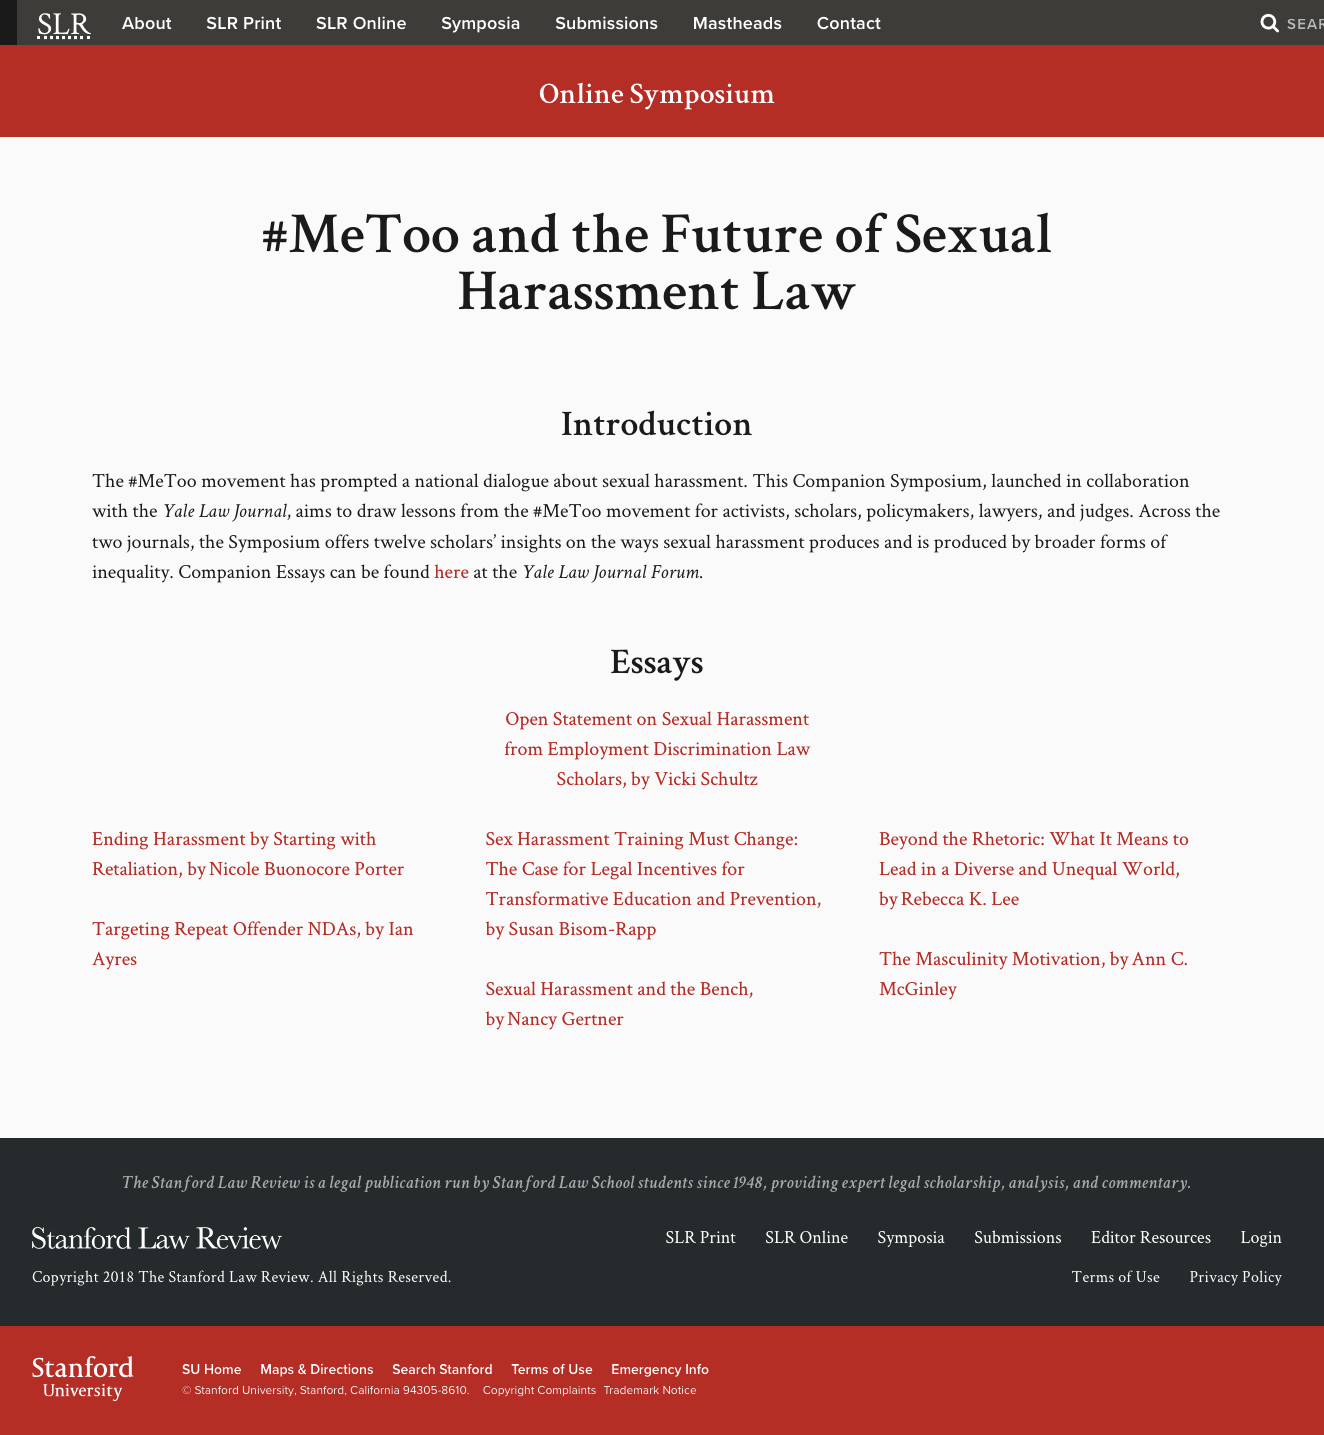 https://www.stanfordlawreview.org/metoo-symposium/